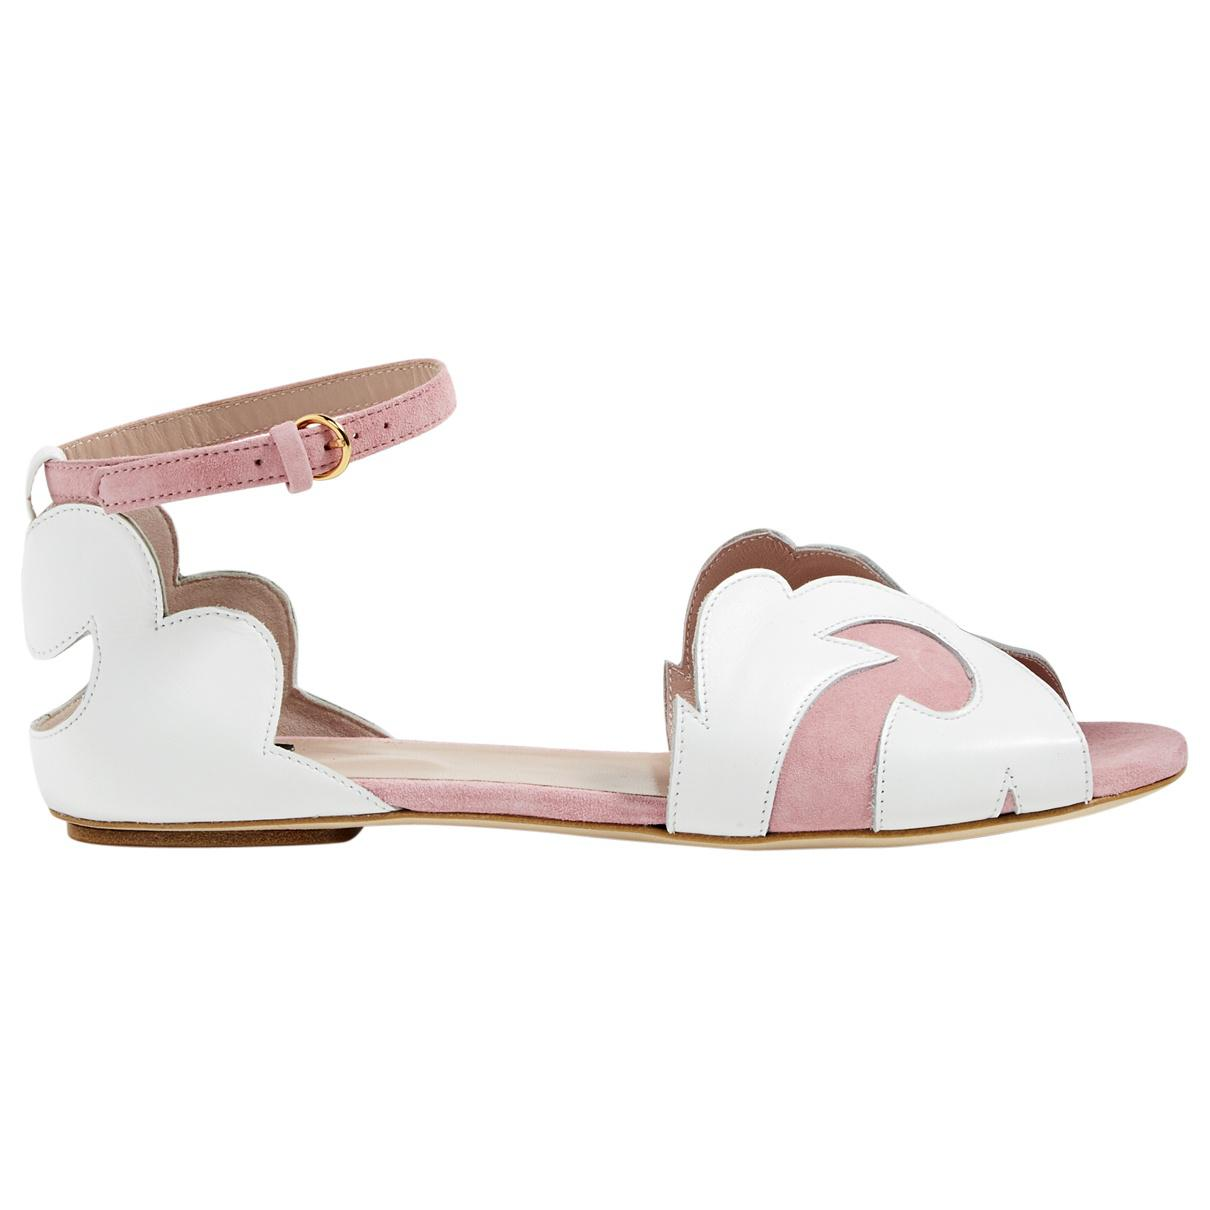 Pre-owned - Leather sandals Moschino 4JNHgDsph